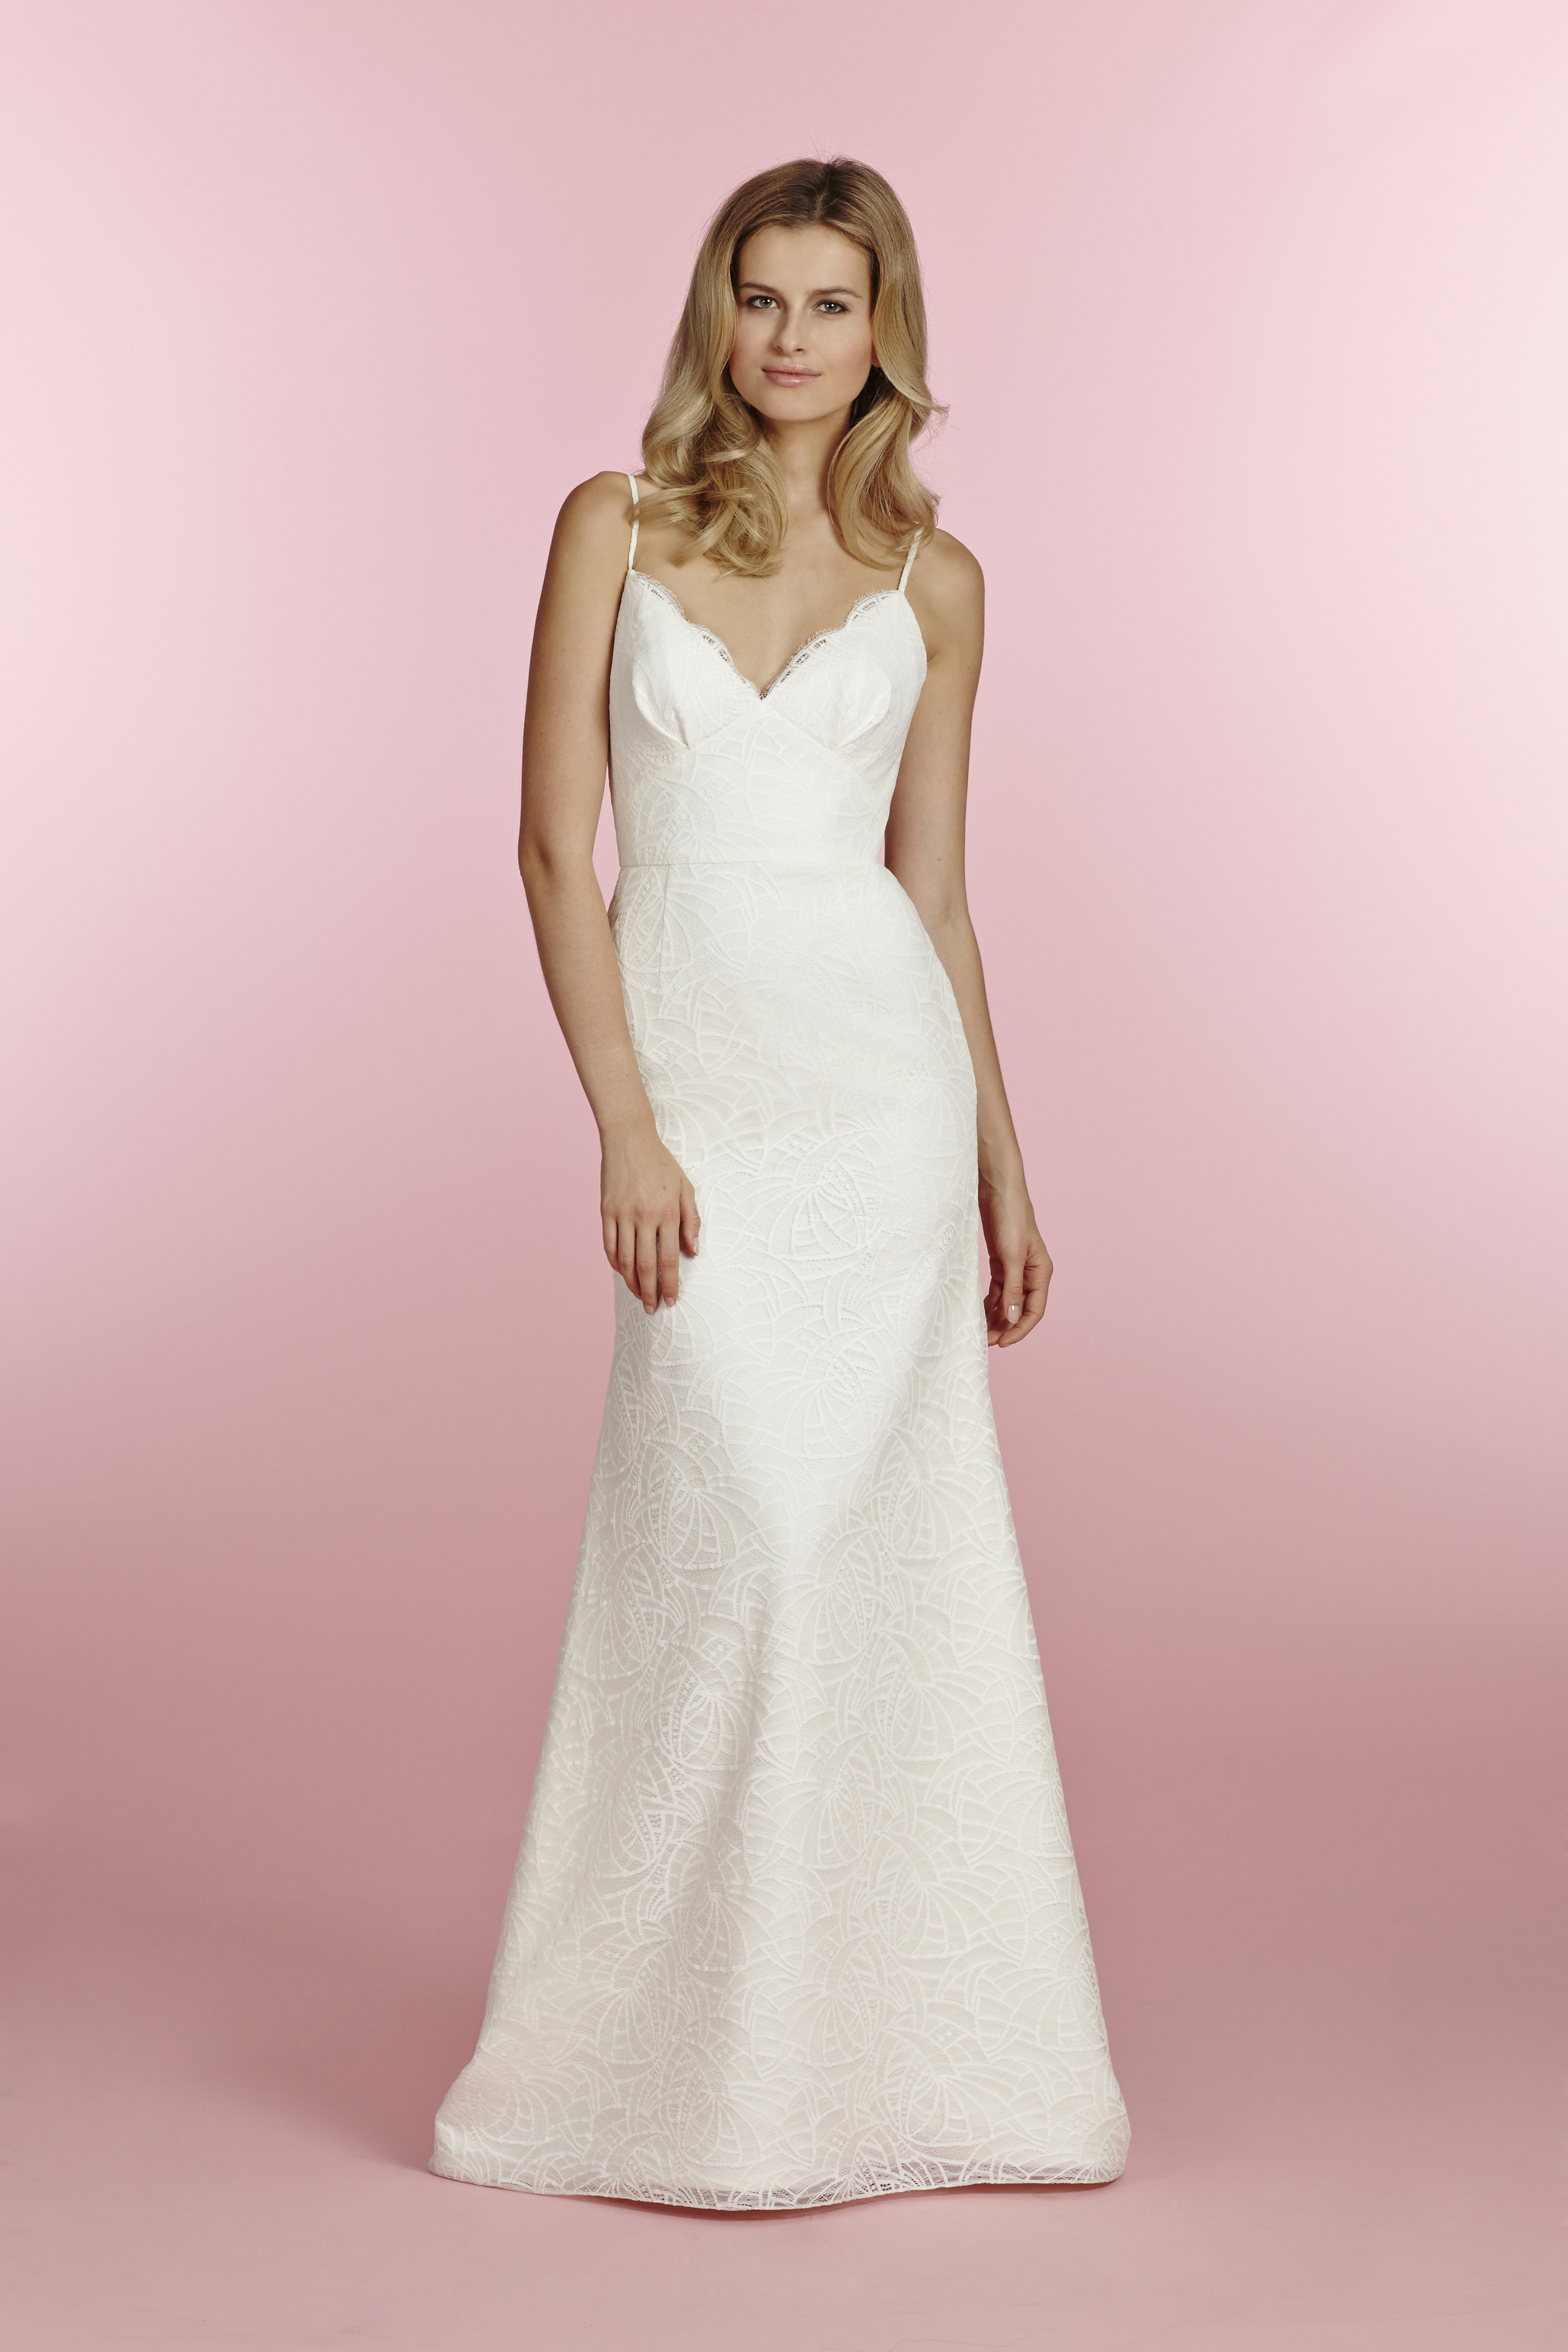 Bridal Gowns and Wedding Dresses by JLM Couture - Style 1503